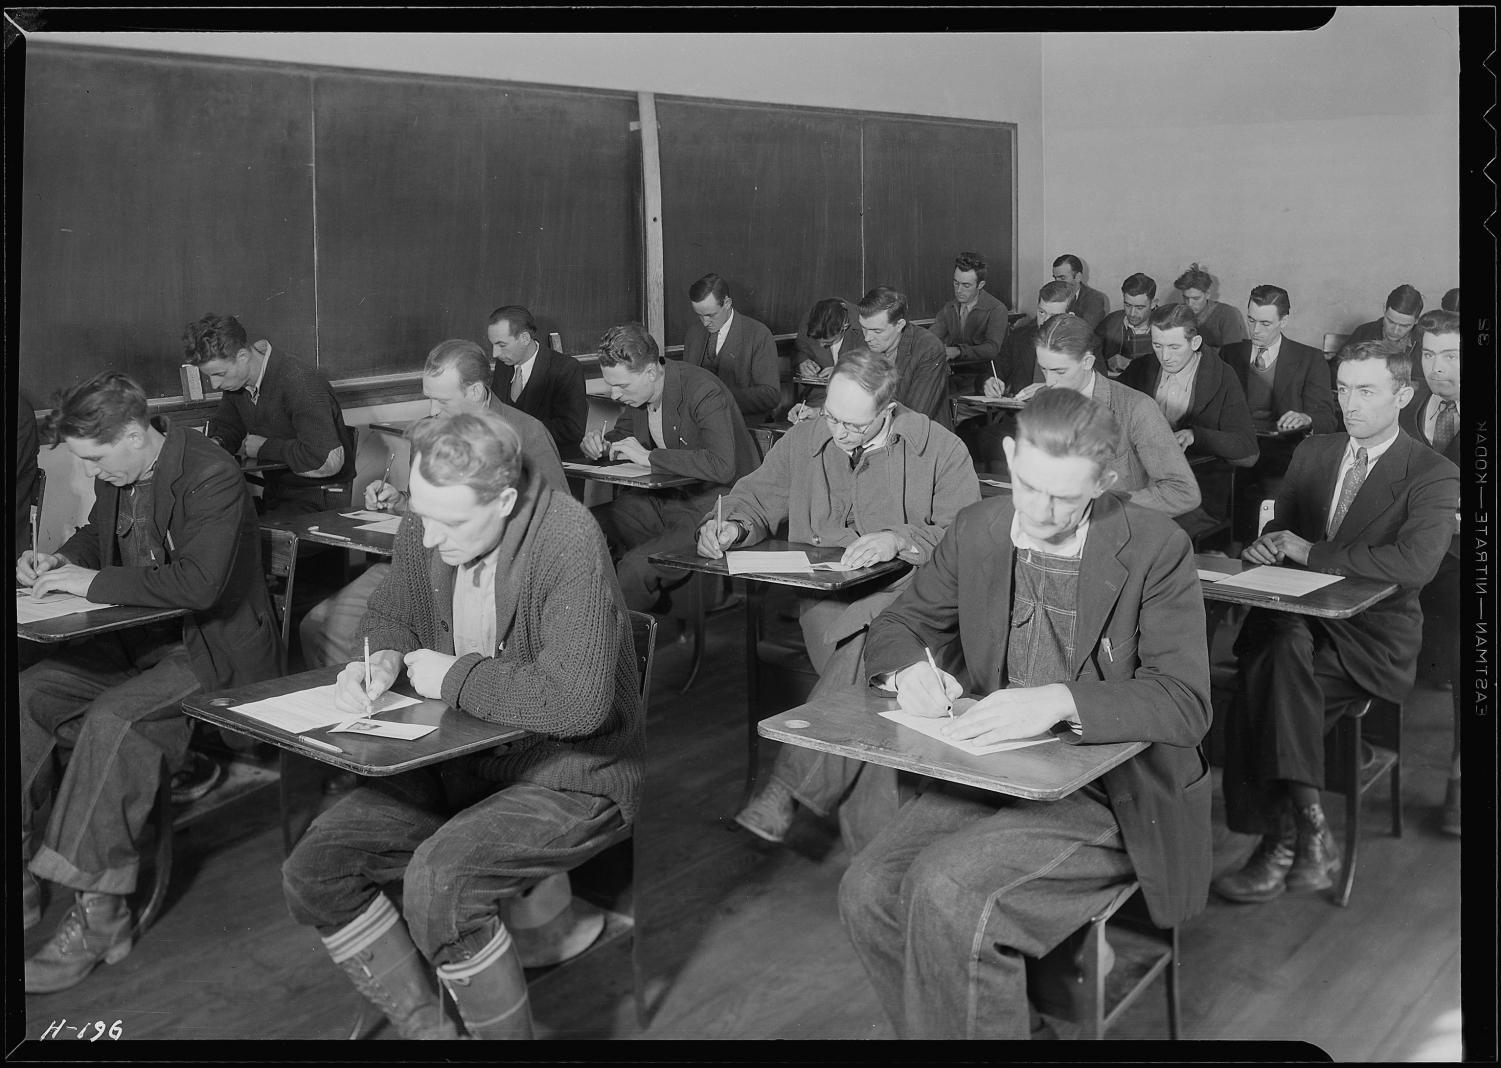 A bunch of unskilled men taking an exam in a high school